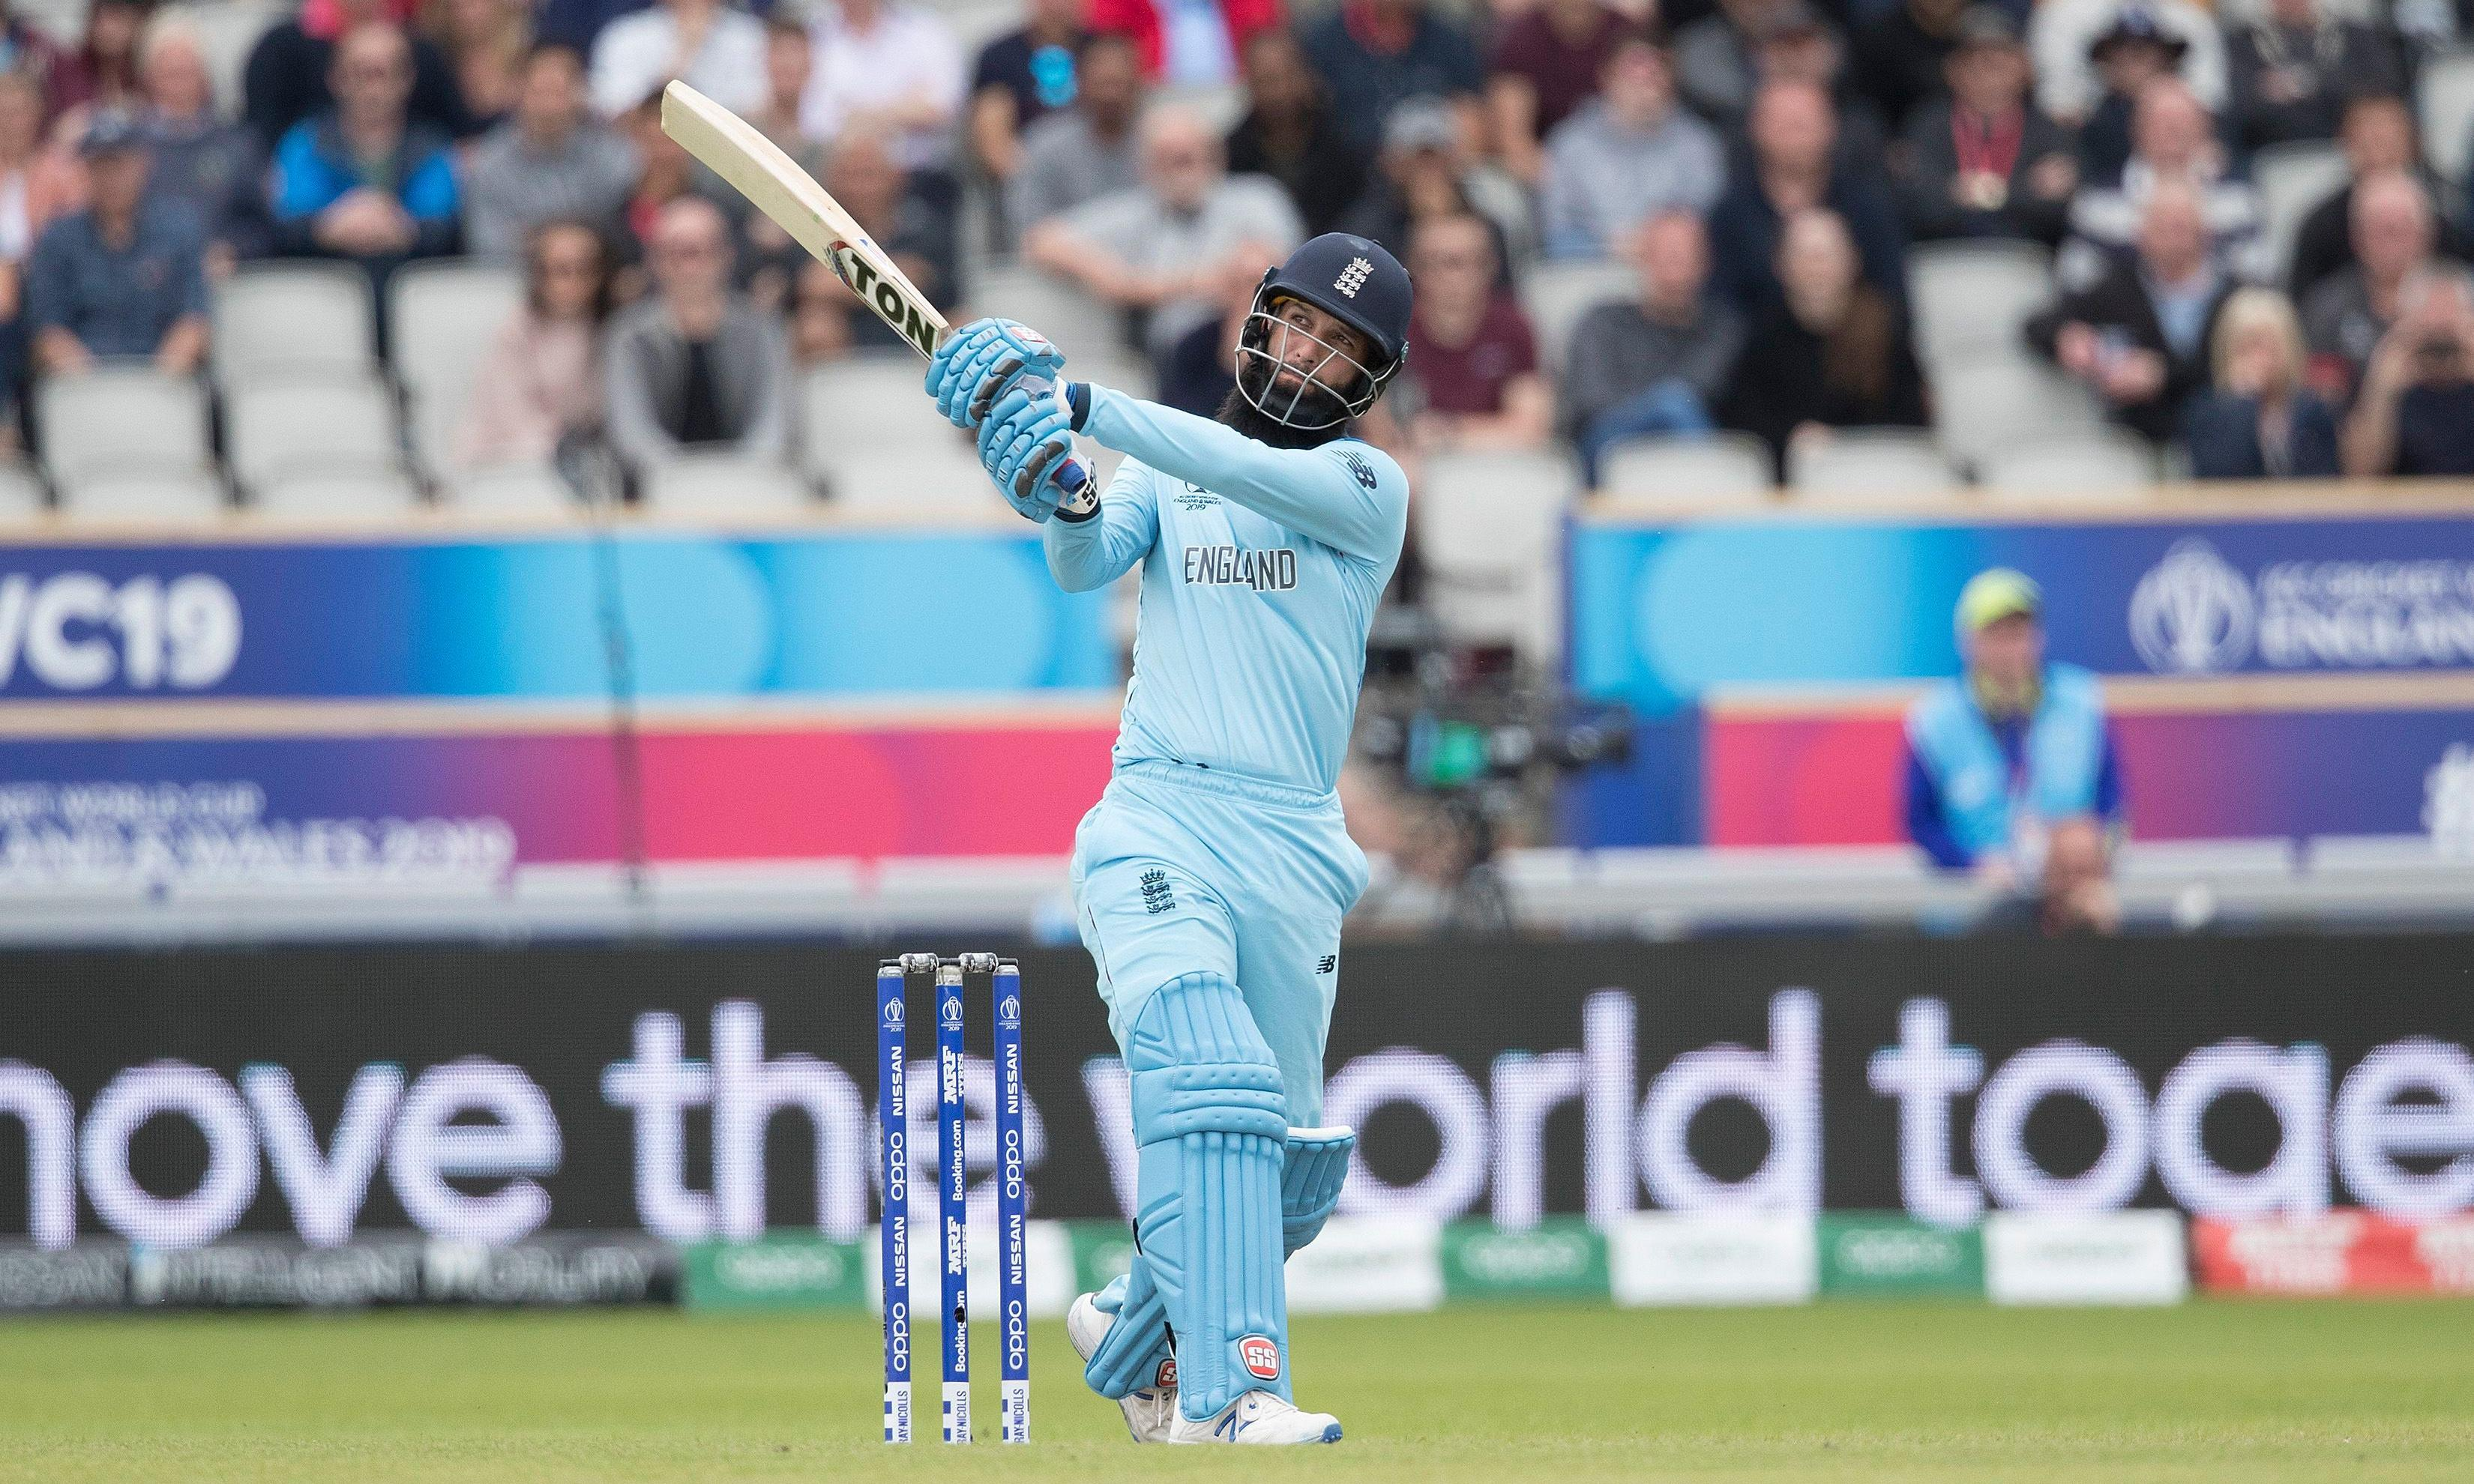 Moeen Ali driving sense of fun for England's World Cup joy of sixes